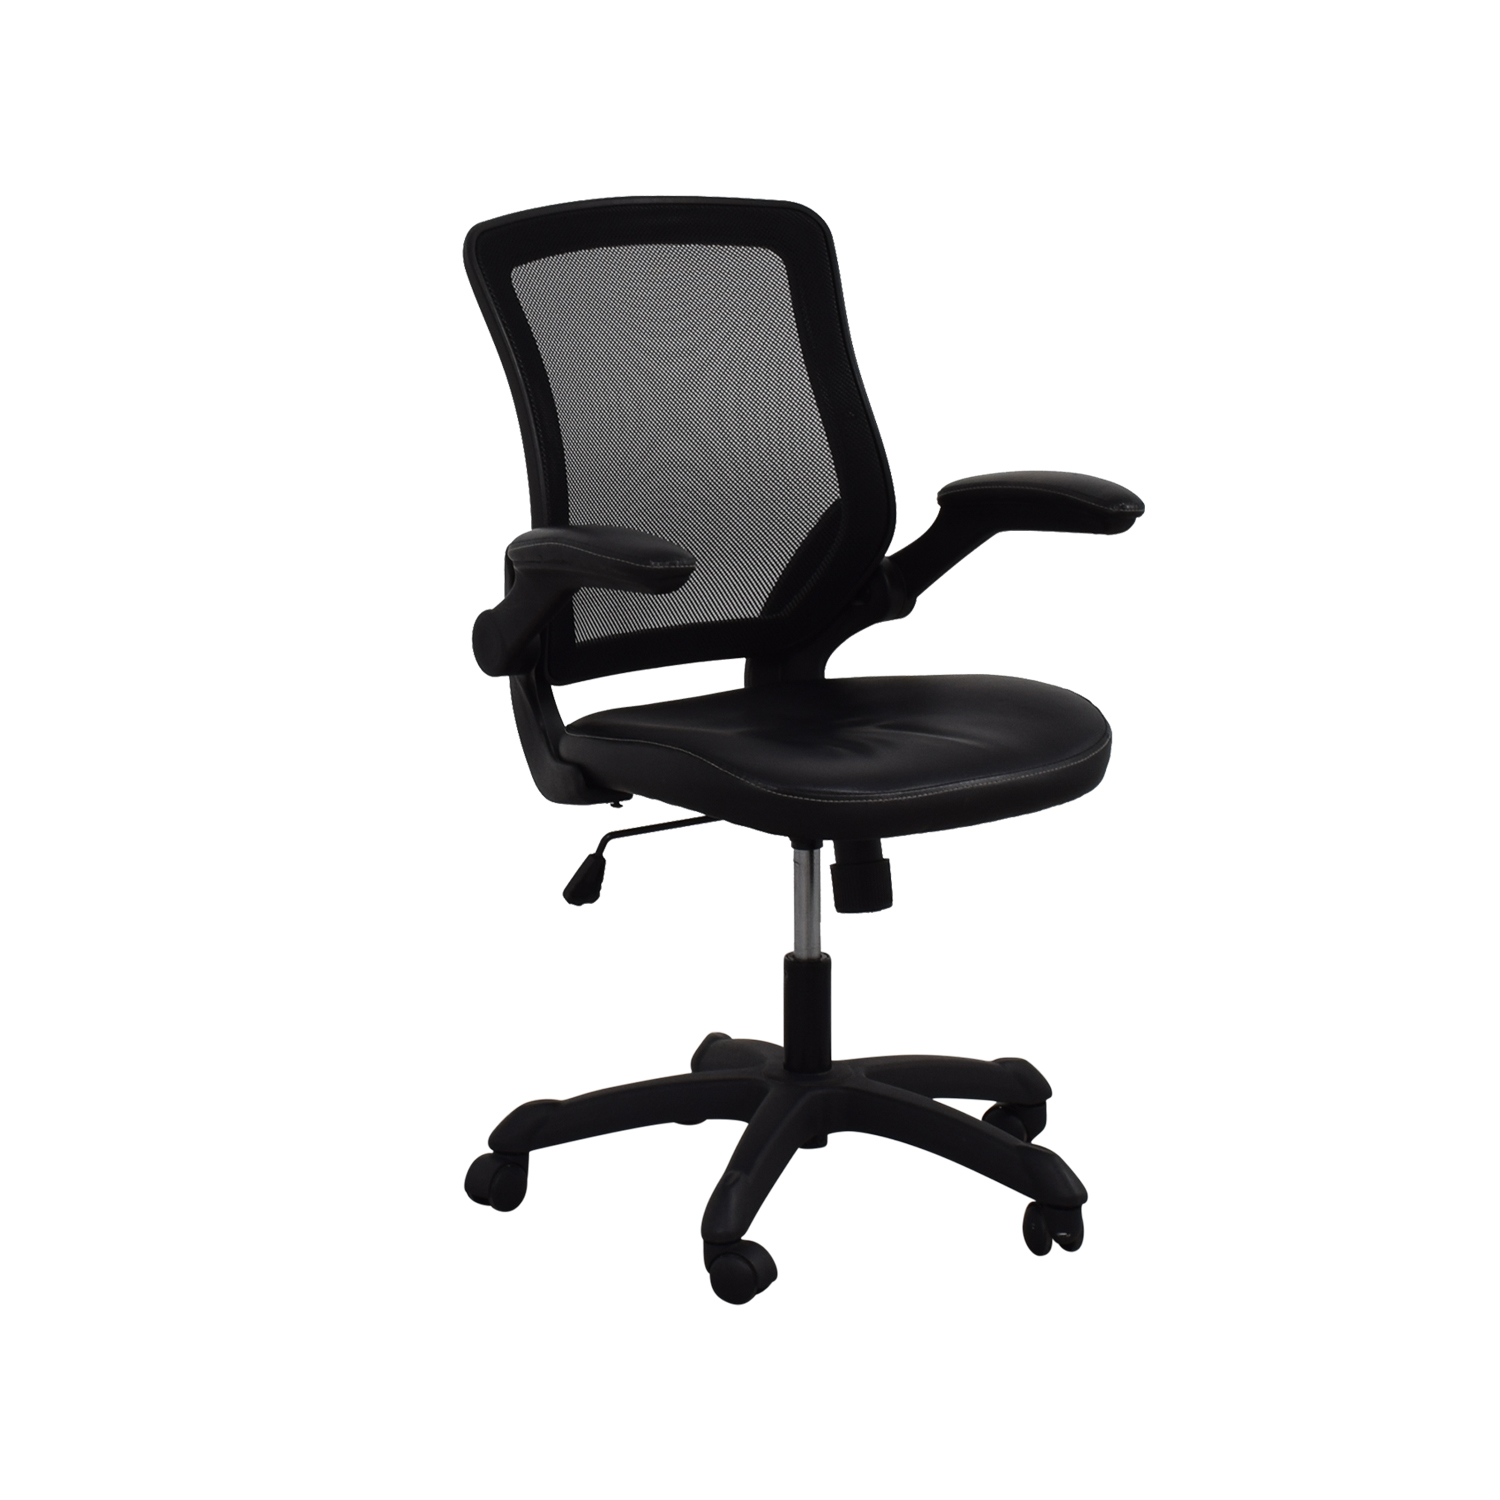 72% OFF - Adjustable Black Office Arm Chair / Chairs